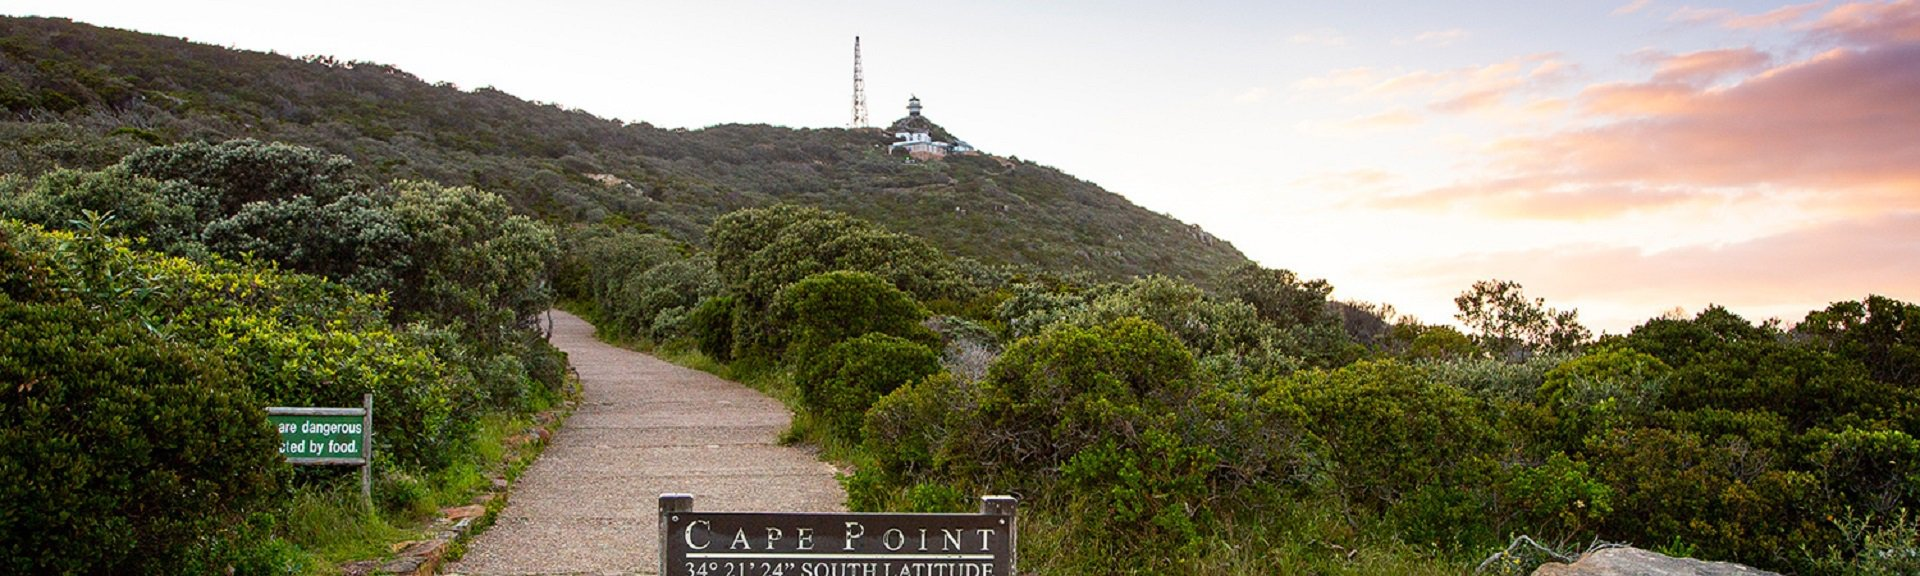 CapePoint | Cape Town | Excursions | Things to do With Kids